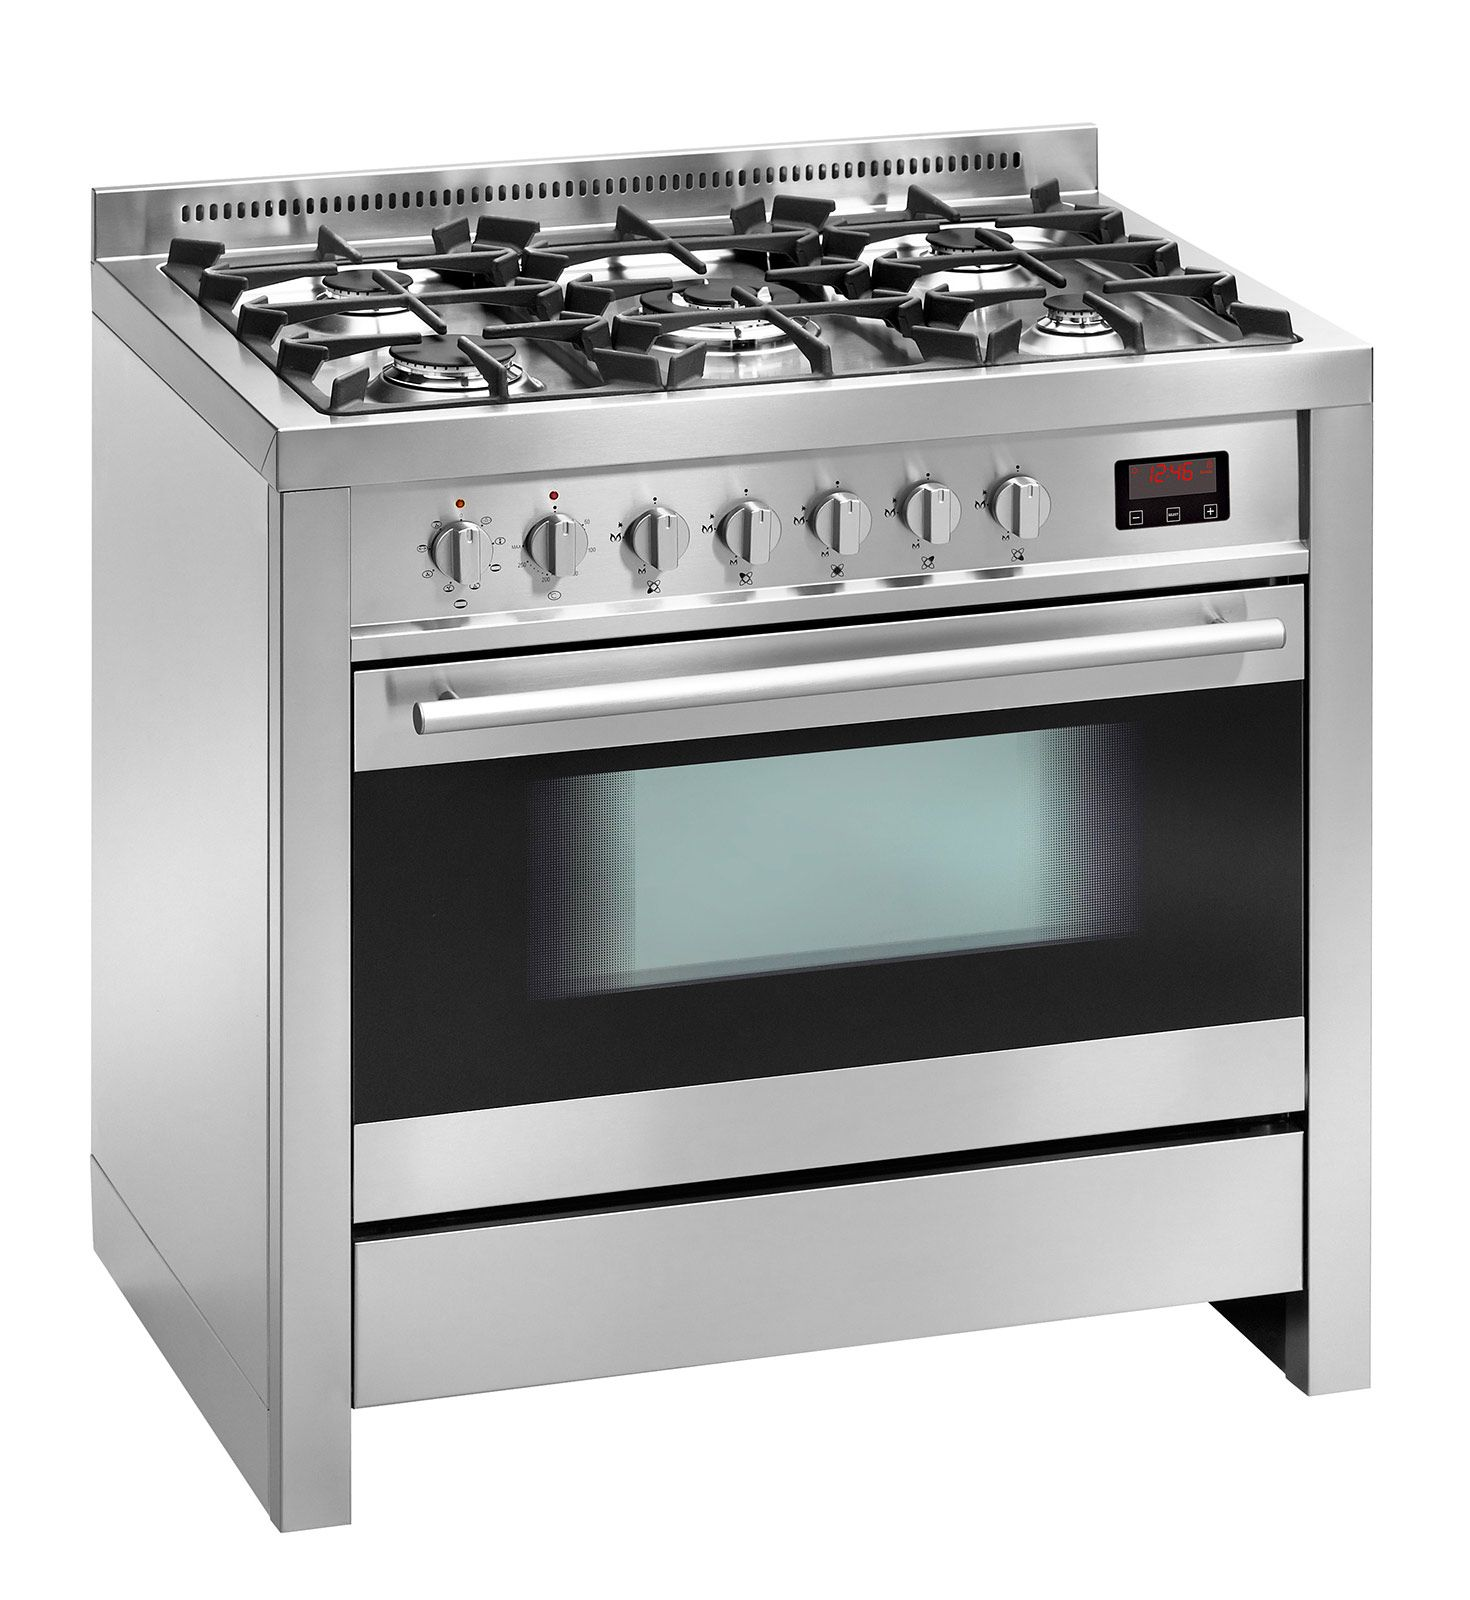 Pin by gilusi milano on b2b pinterest appliances cooking and range - Cucine con forno elettrico ventilato ...